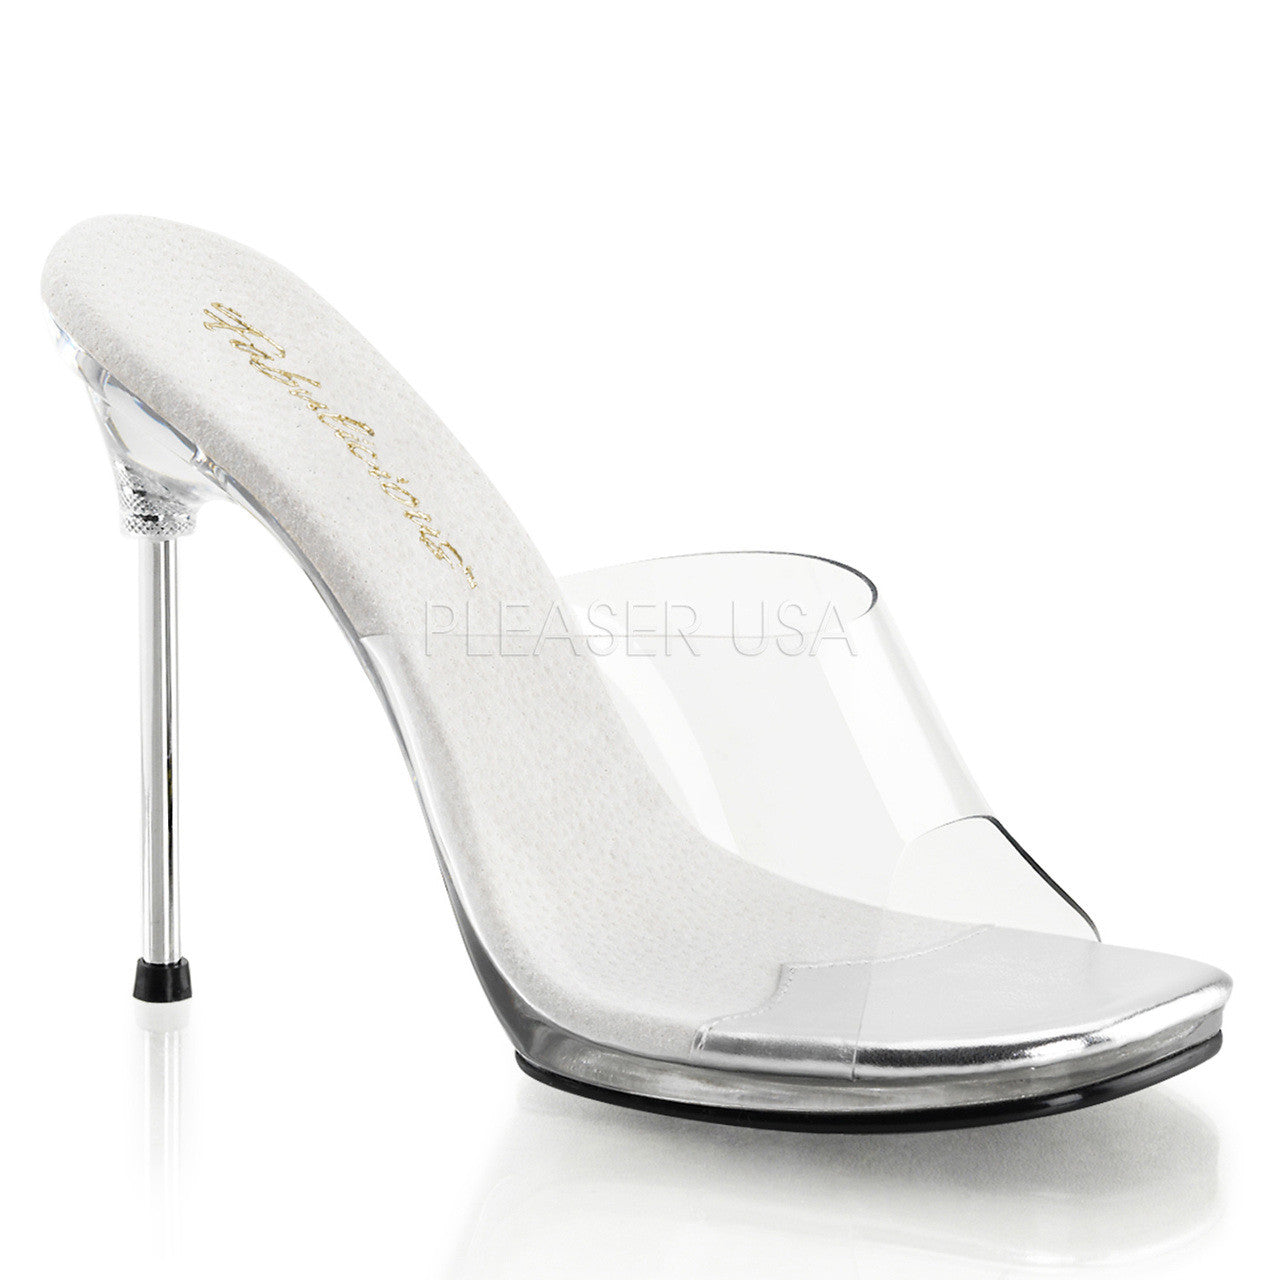 Fabulicious,FABULICIOUS CHIC-01 Clear-Clear Stiletto Slides - Shoecup.com